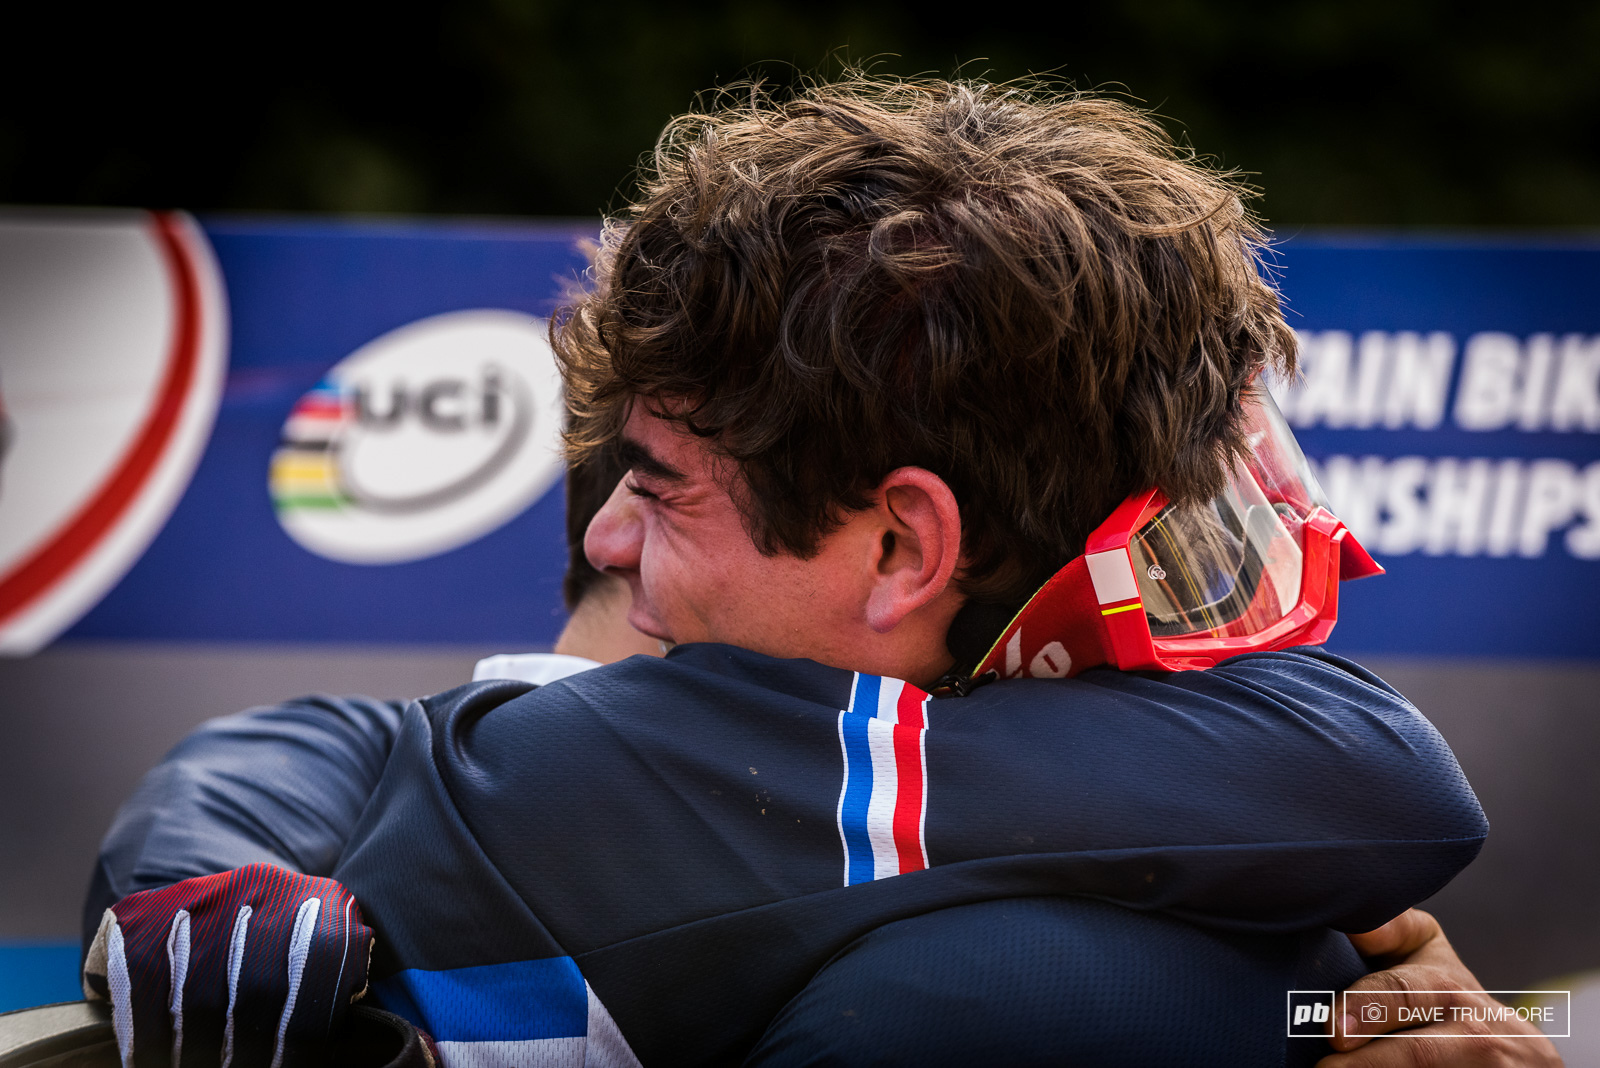 Loris Vergier and Loic Bruni share a moment to close an incredible season.